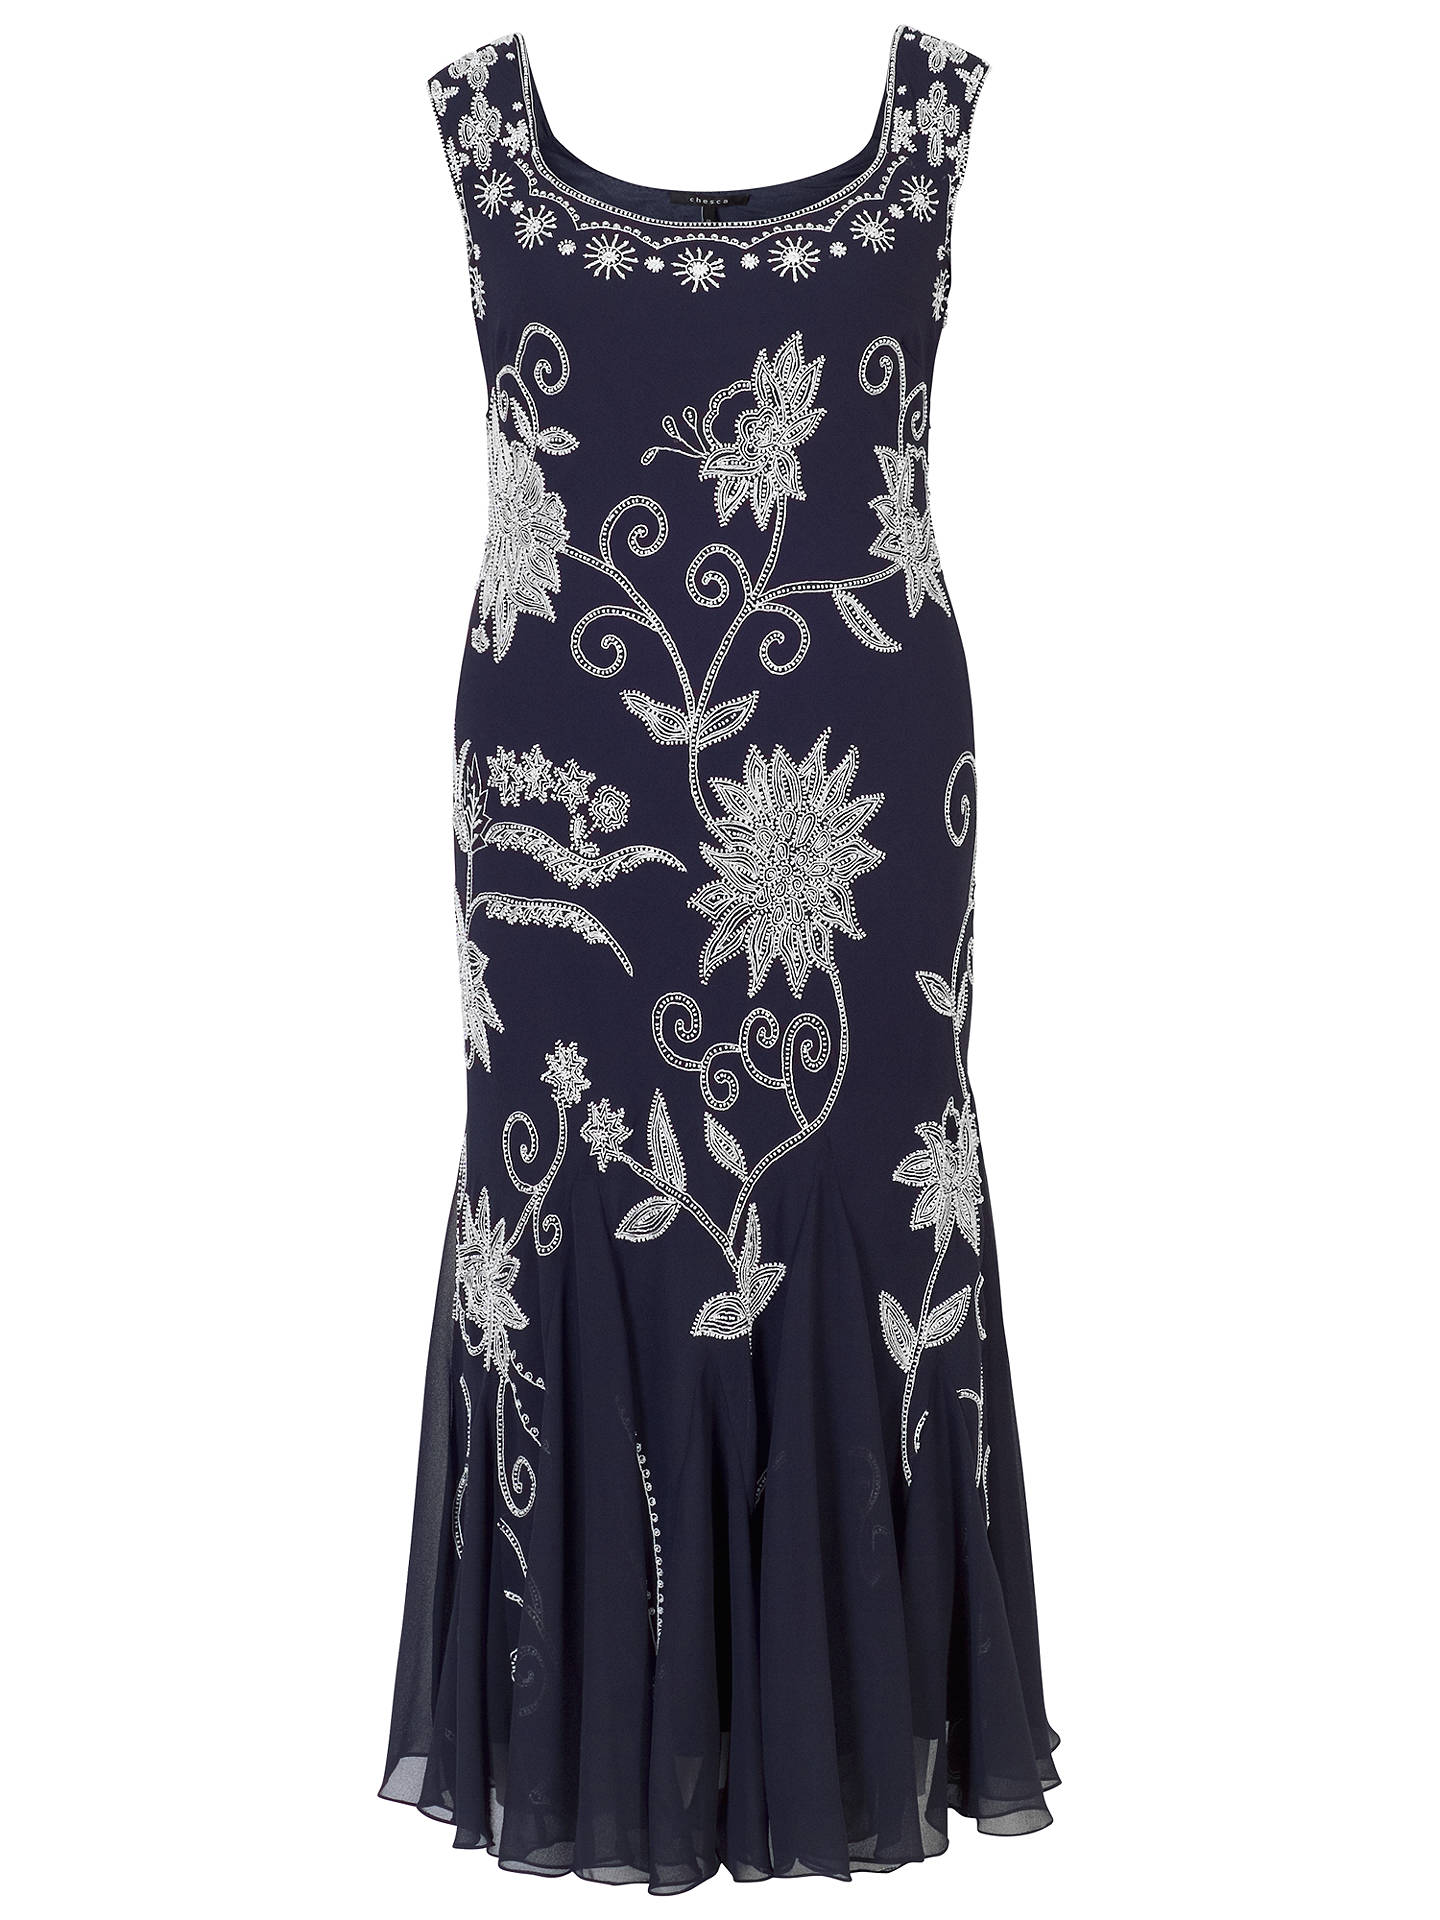 BuyChesca Embroidered Beaded Dress, Navy/Ivory, 12 Online at johnlewis.com